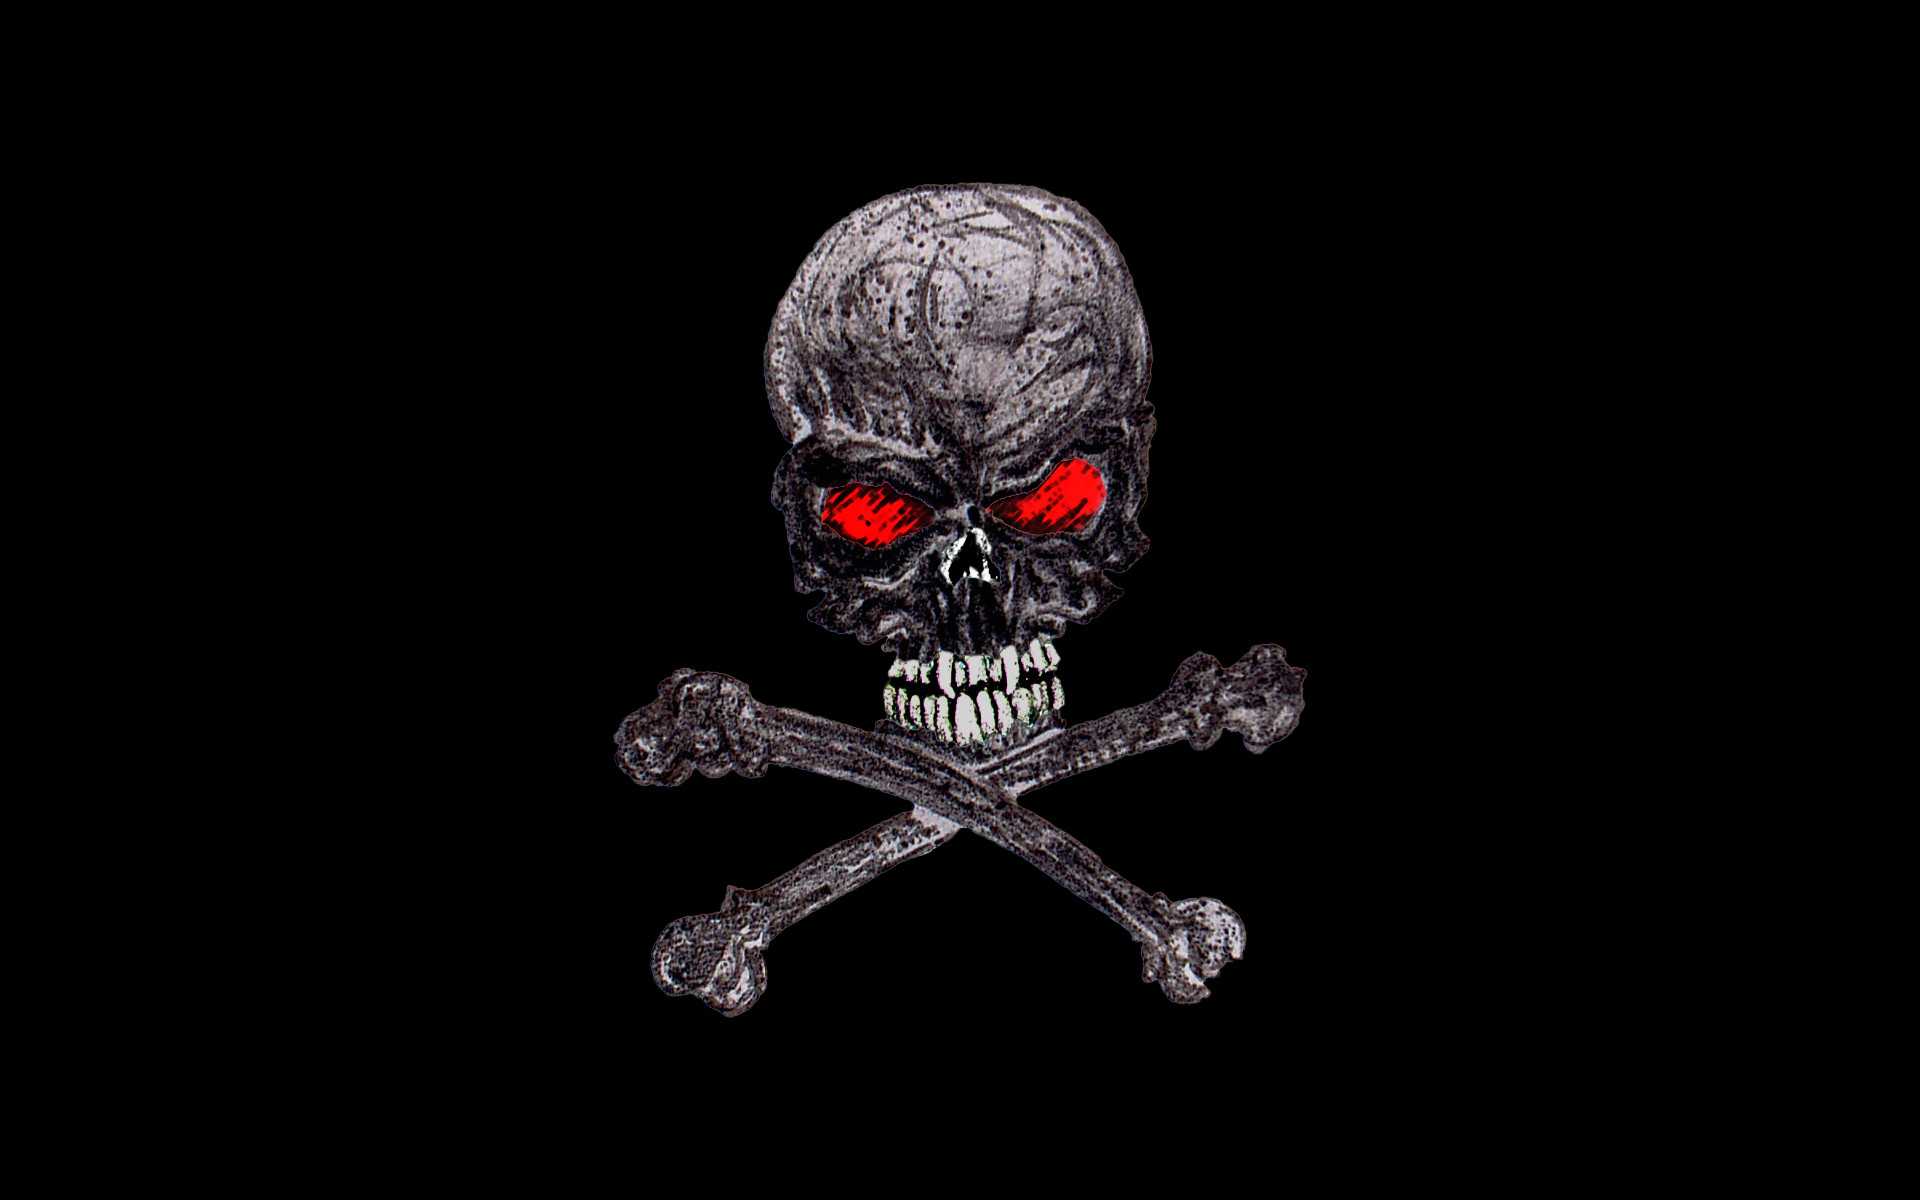 Awesome Skull Wallpapers Wallpapers Browse: Awesome Skull Wallpapers (51+ Images